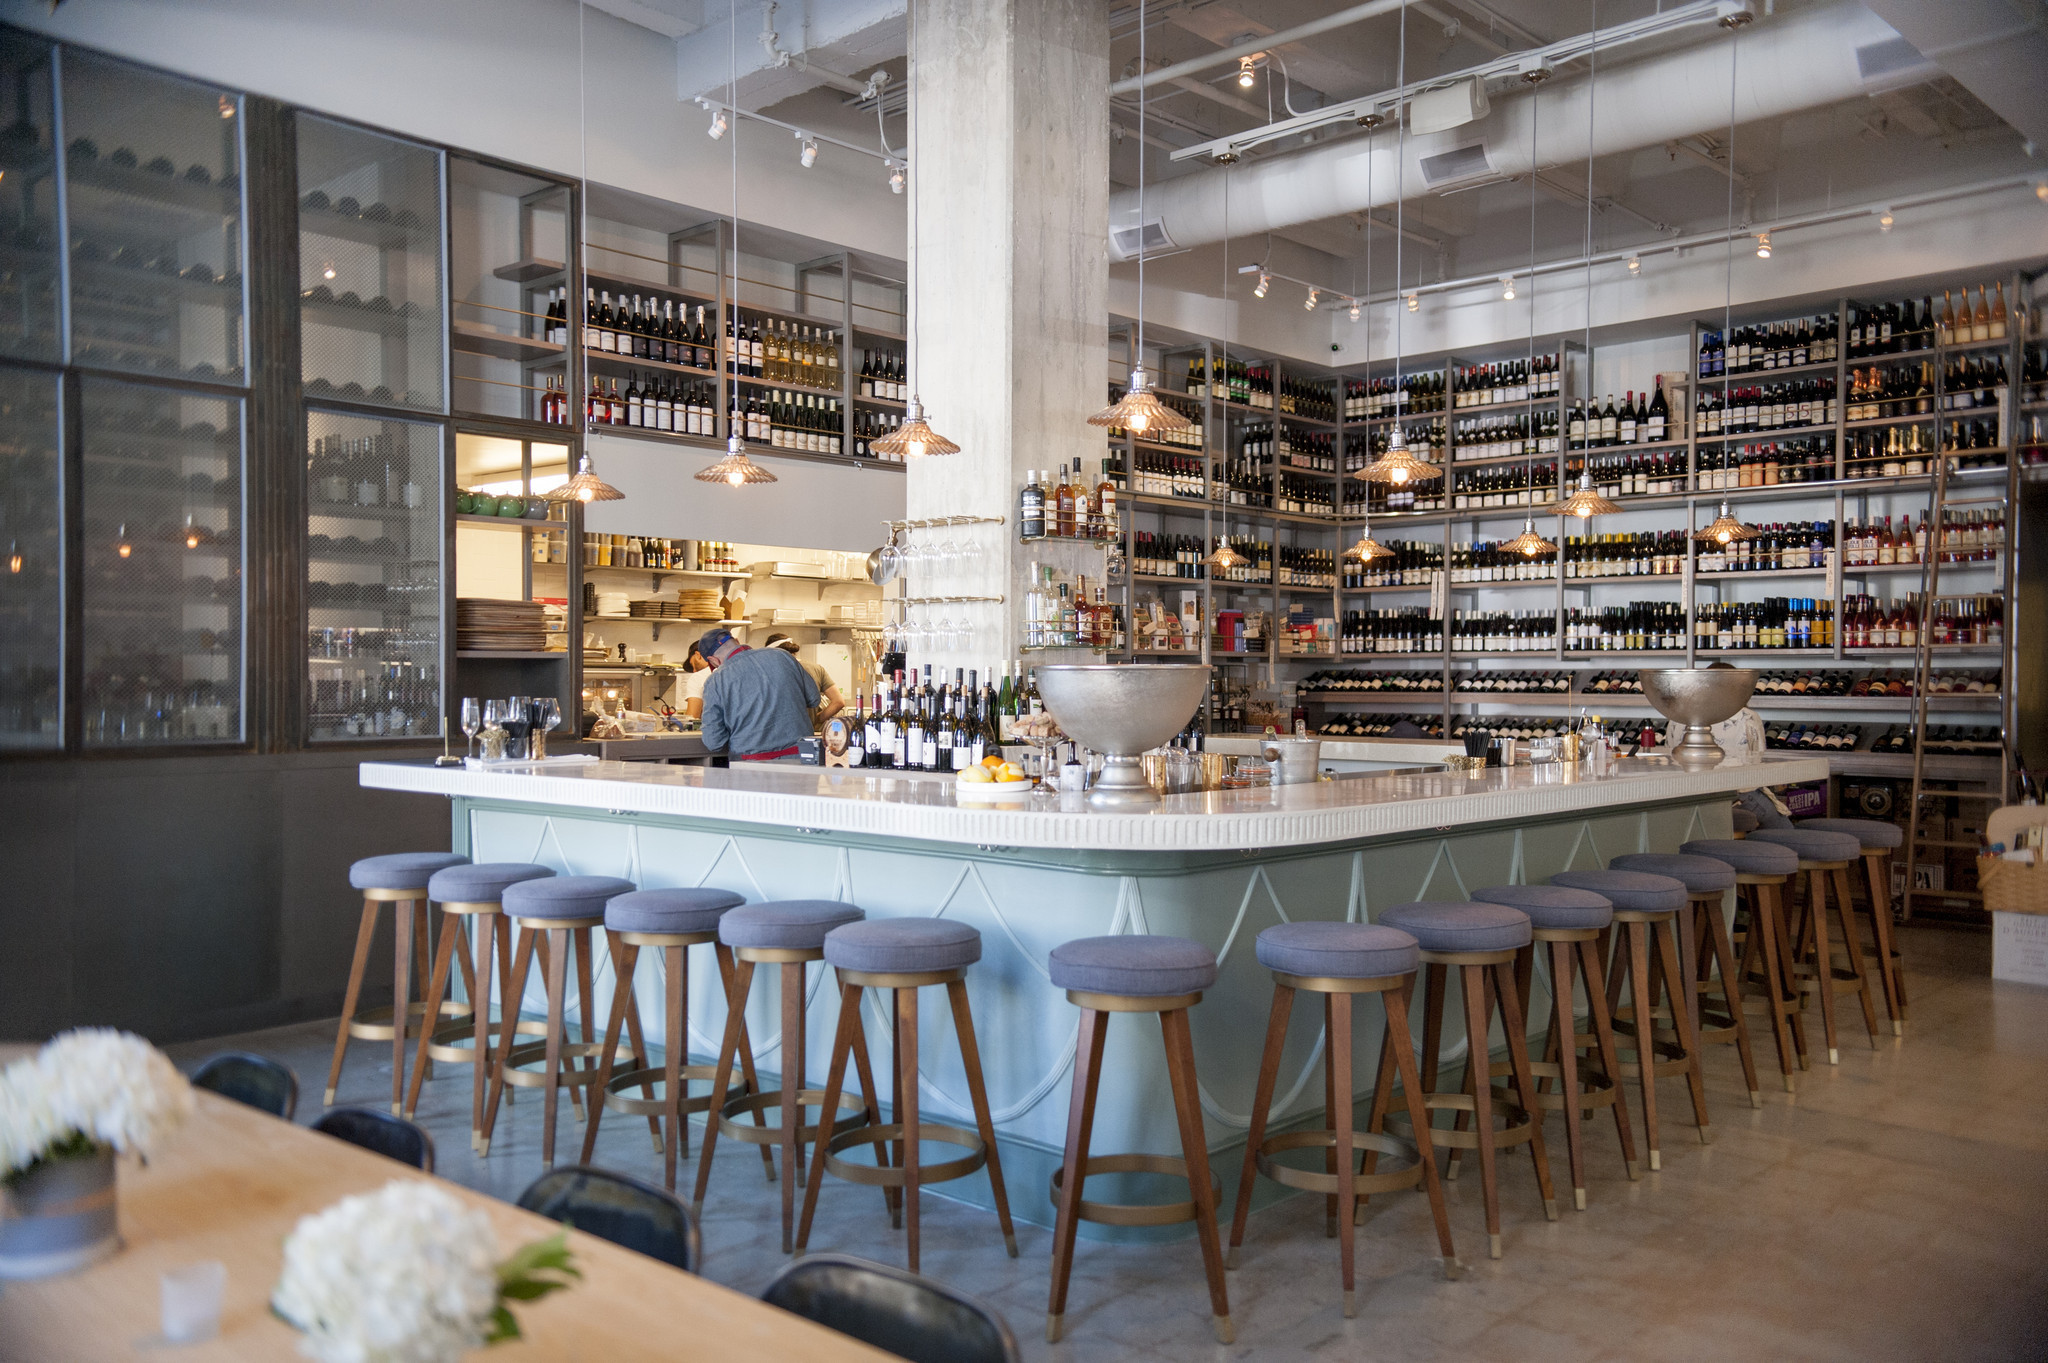 New Esters Wine Shop In Santa Monica Has 250 Wines And